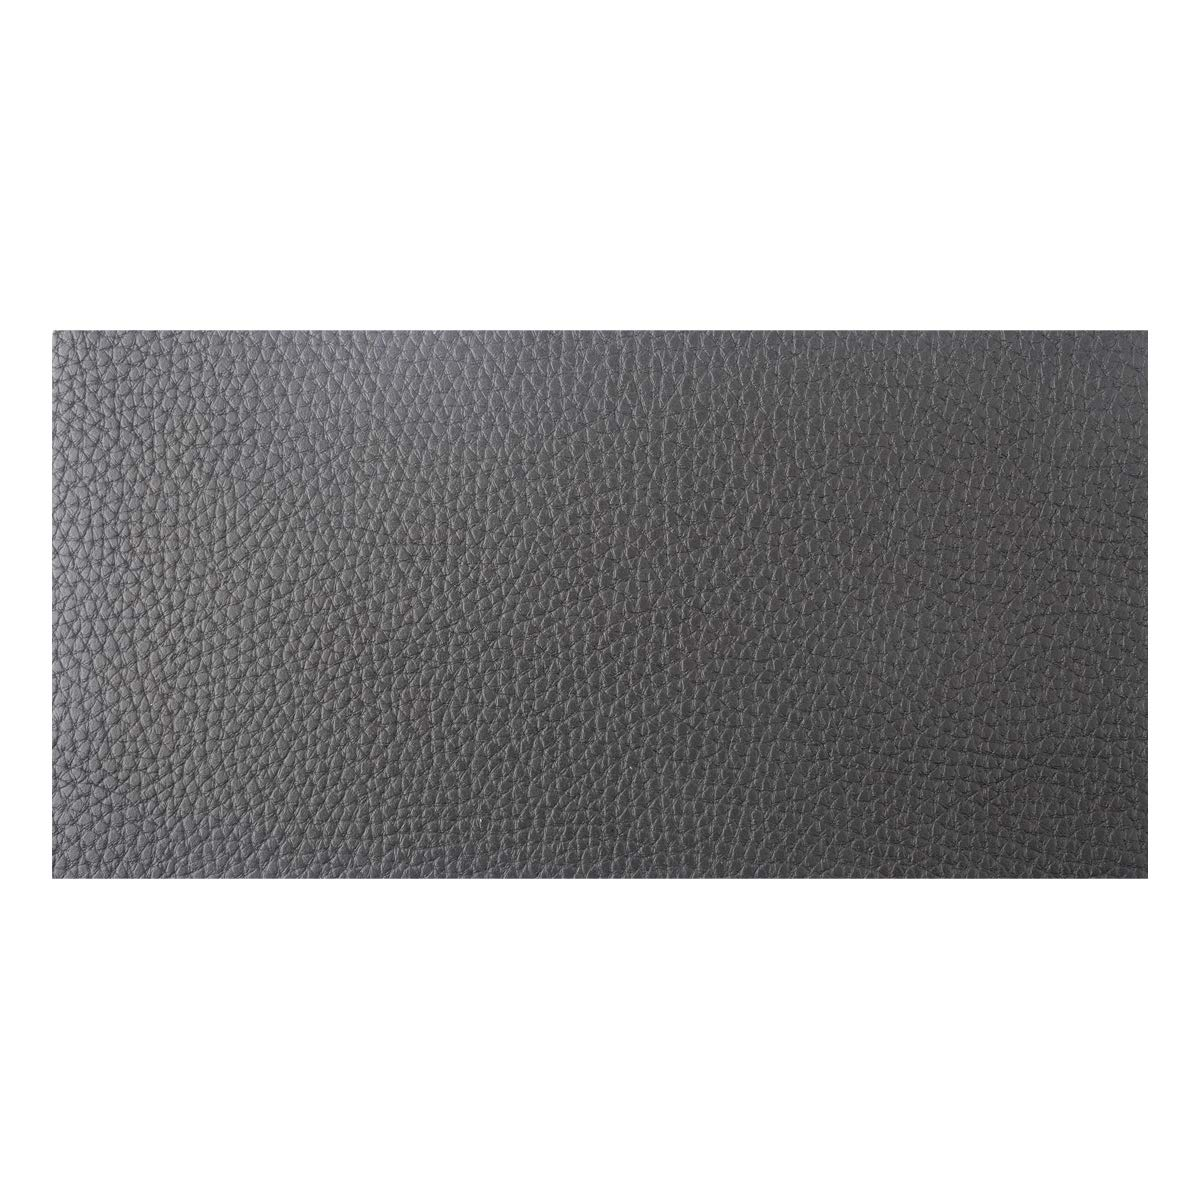 Leather Repair Patch - Self-Adhesive For Sofa Car Seats And Bags, 8 Inch By  4 Inch, Litchi Grain & Dark Grey - By Beaulegan on Galleon Philippines